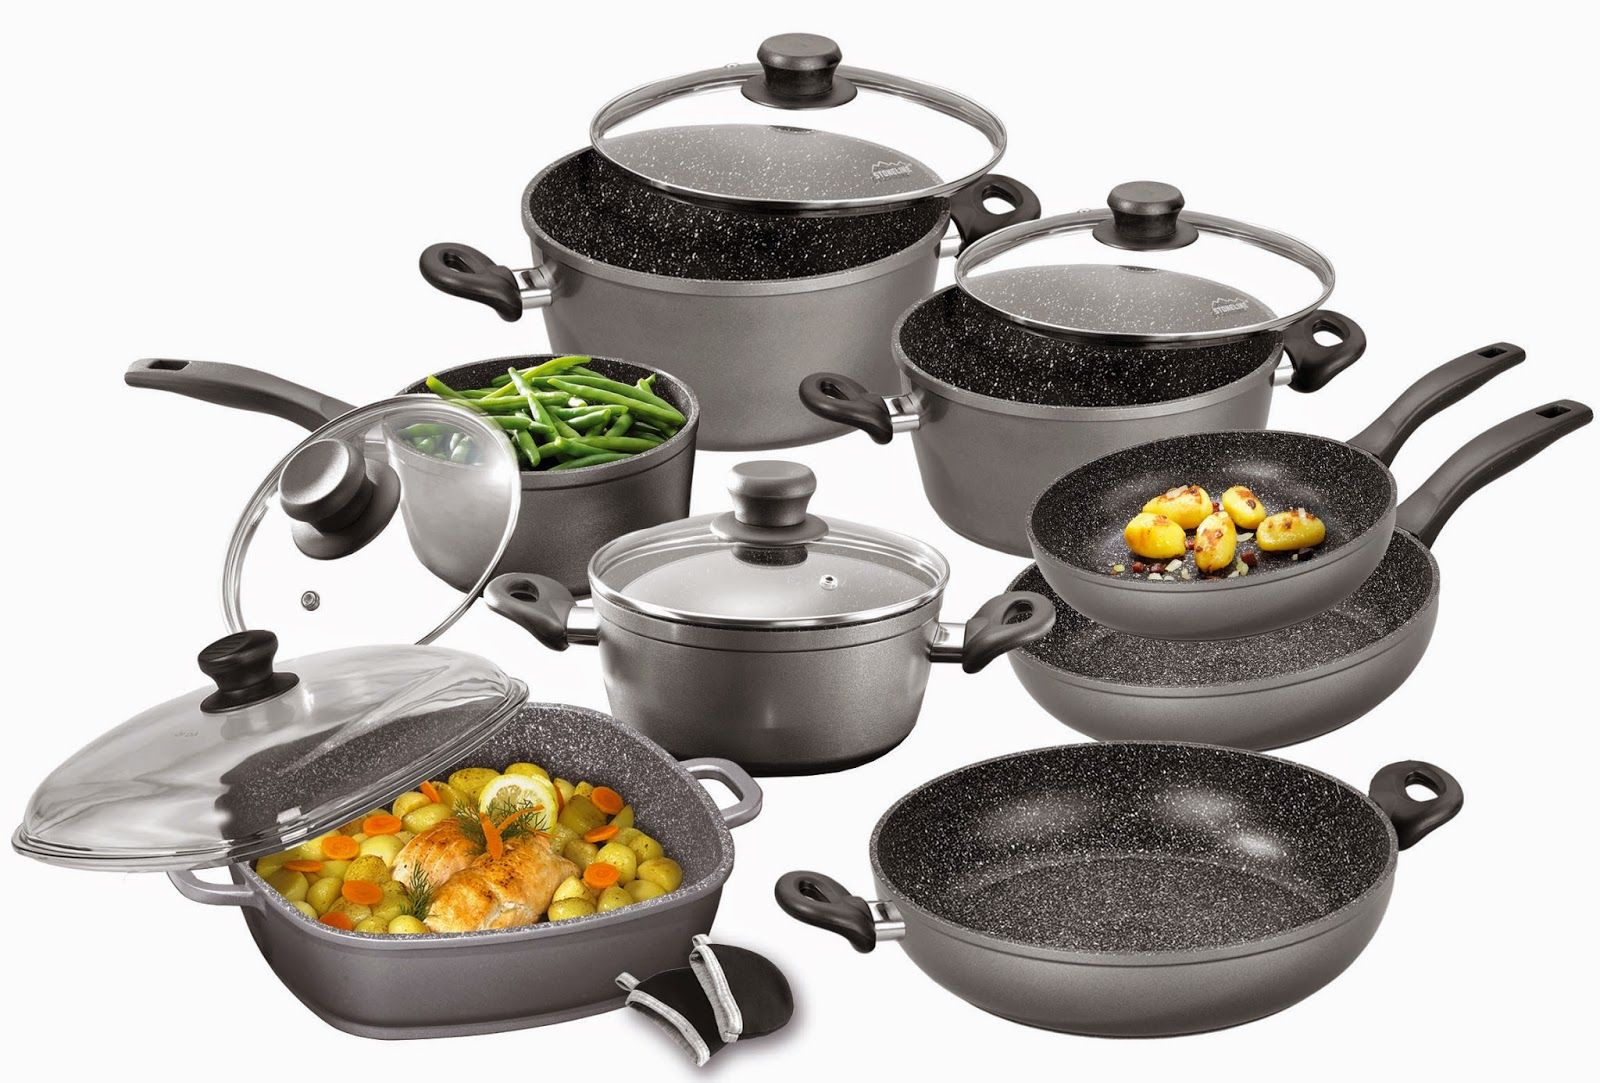 Top 10 Best Non Stick Cookware Sets In 2021 Reviews Hqreview Best Non Stick Cookware Cookware Sets Cookware Set Best